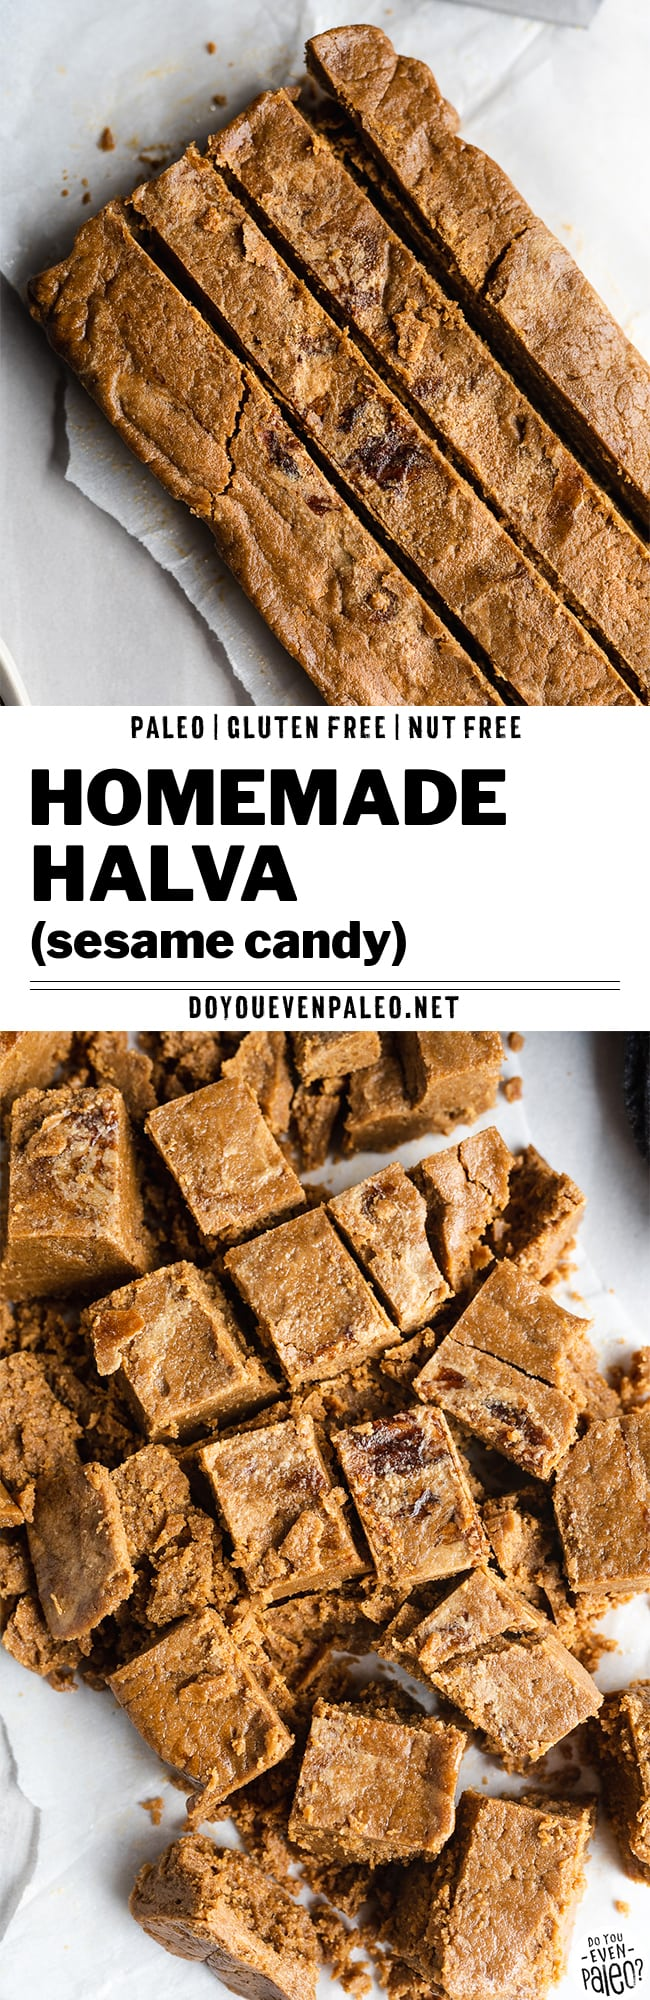 Homemade Halva Recipe (Paleo and Gluten Free) by DoYouEvenPaleo.net